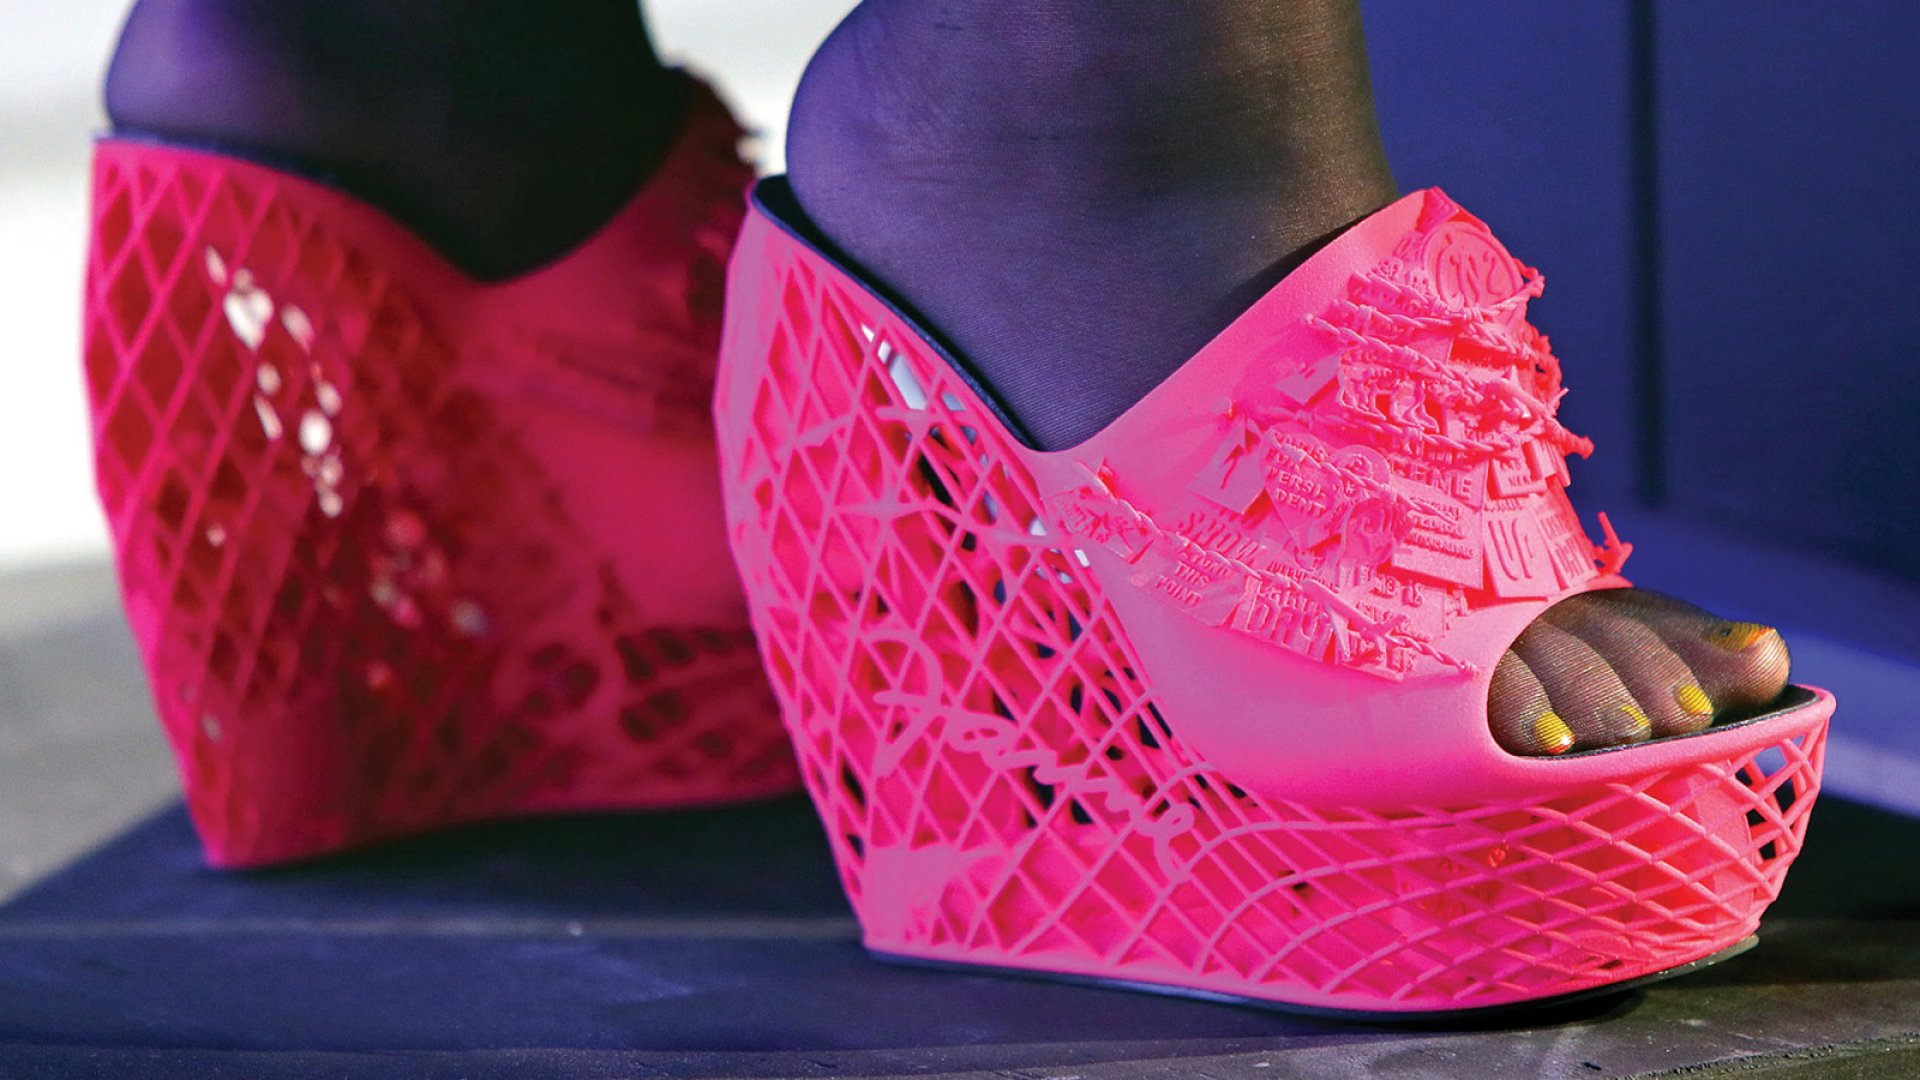 Walk a Mile in Her (3D-Printed) Shoes